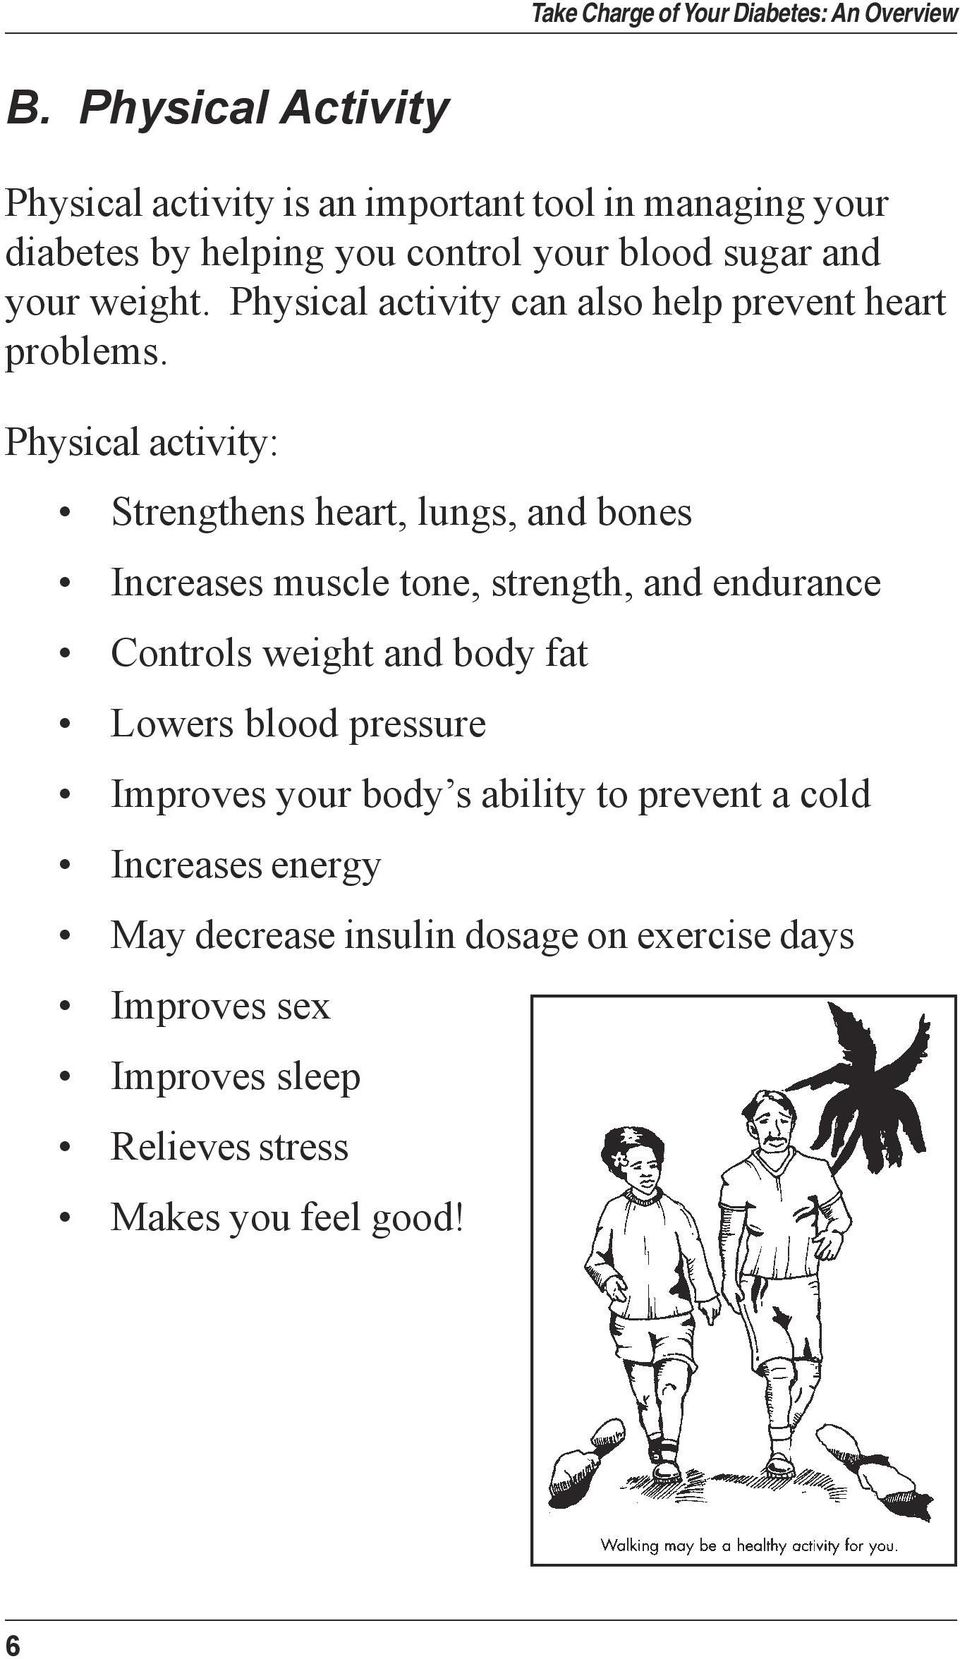 Physical activity: Strengthens heart, lungs, and bones Increases muscle tone, strength, and endurance Controls weight and body fat